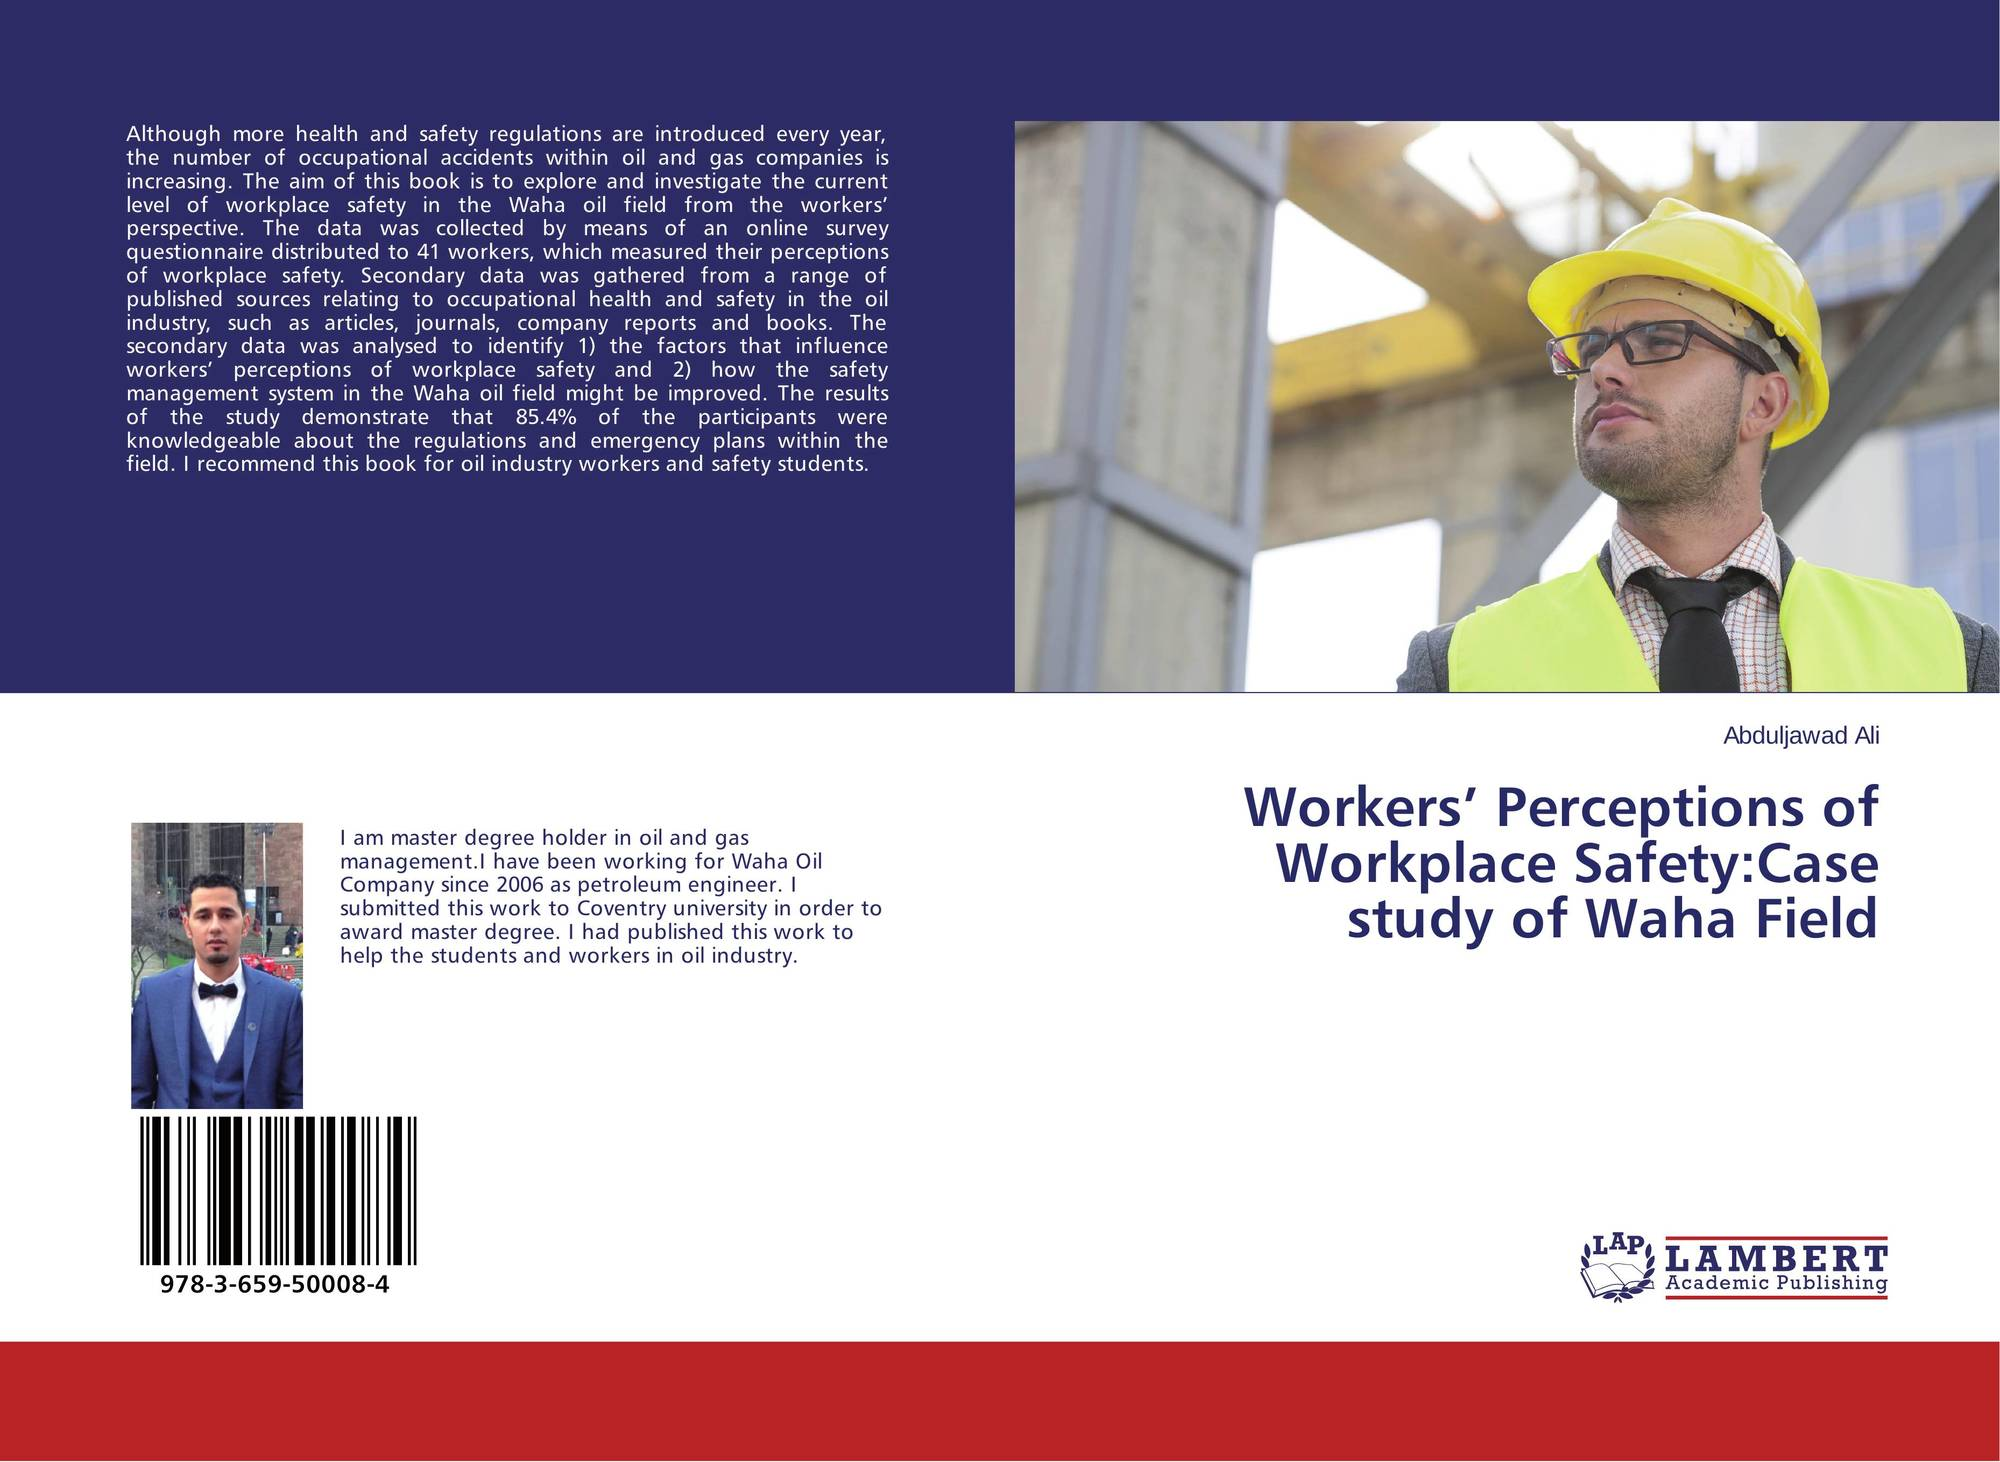 Workers' Perceptions of Workplace Safety:Case study of Waha